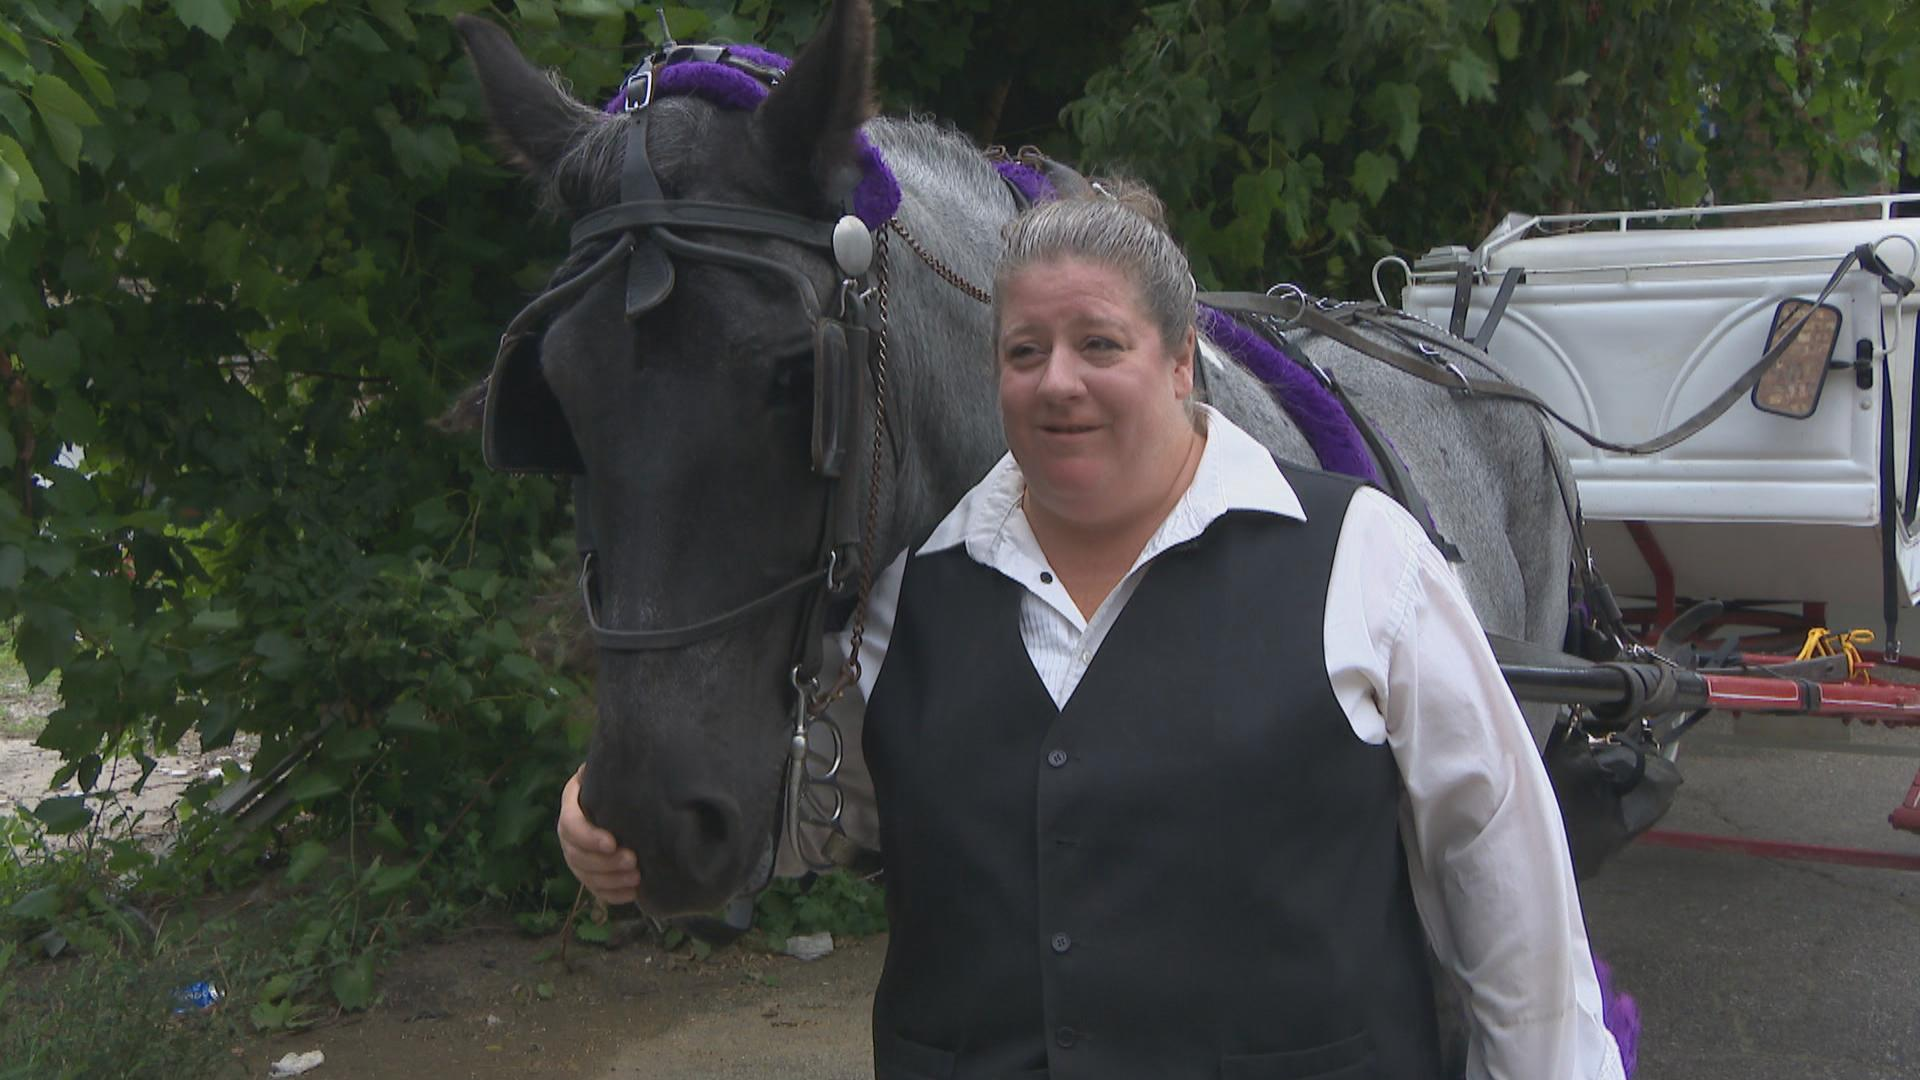 Cathy McFadden works for Antique Coach & Carriage in Chicago. She's operated horse-drawn carriages for 35 years.